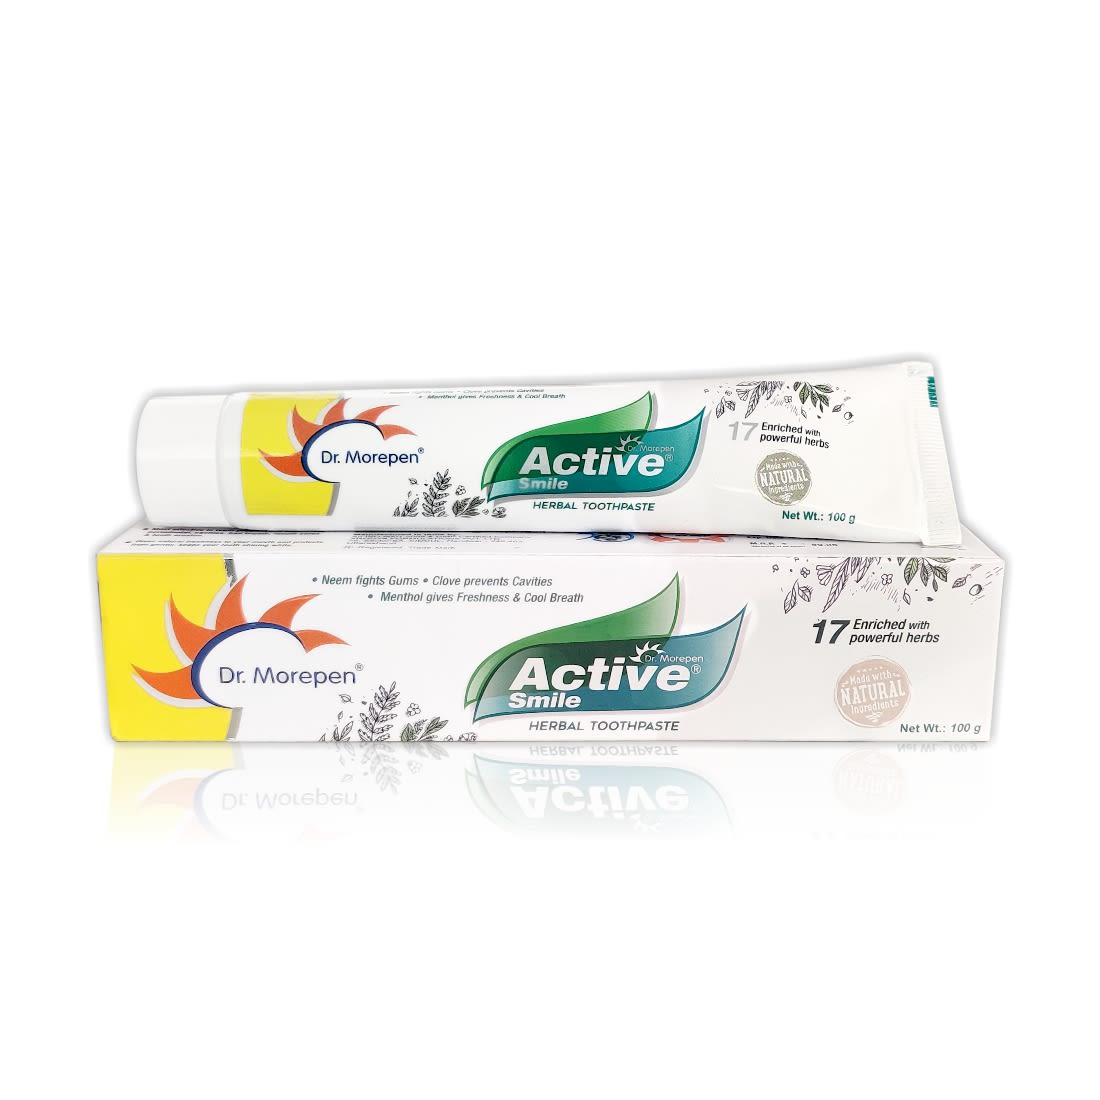 Dr. Morepen Active Smile Herbal Toothpaste - 100gm